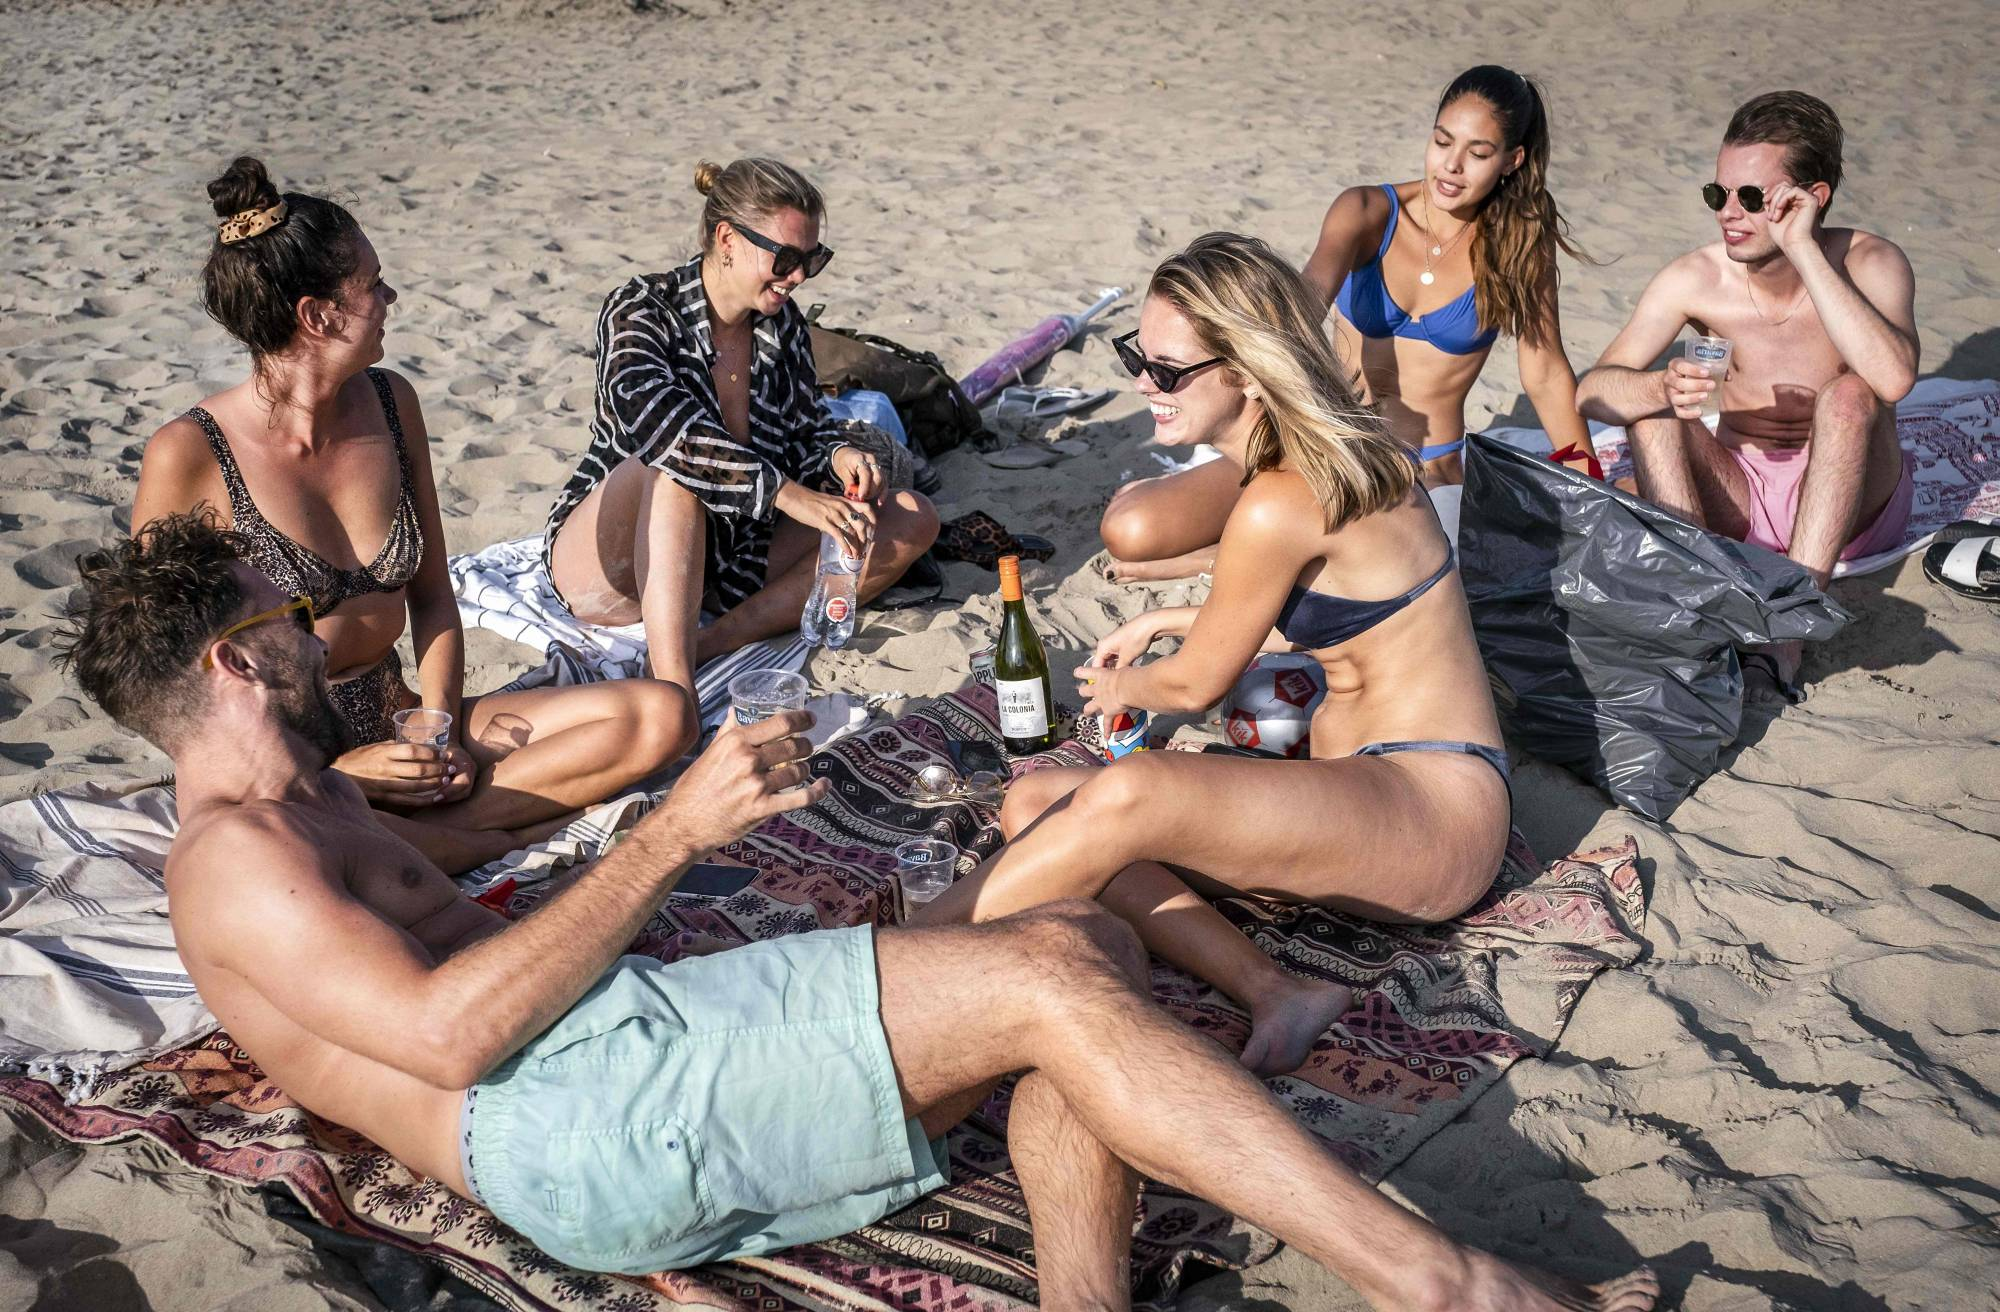 A group of young people gather on the beach in the Dutch coastal town of Zandvoort on Aug. 6. That day Prime Minister Mark Rutte called on tourists to avoid crowded places in Amsterdam as coronavirus infections showed a worrying rise. | AFP-JIJI